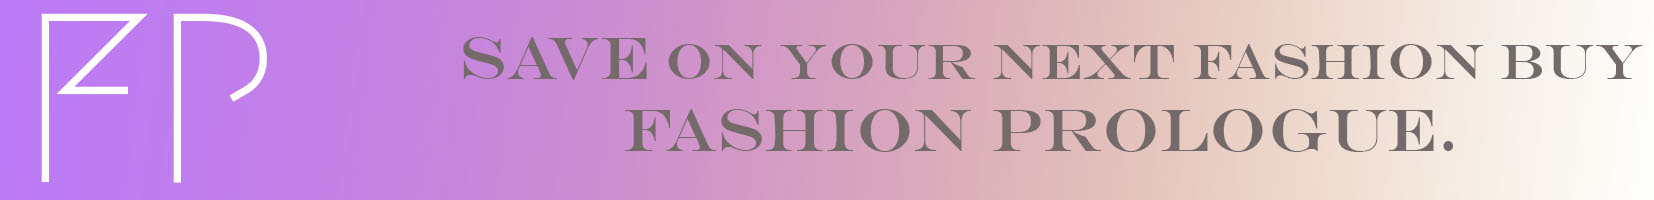 Fashion Prologue - save on fashion banner-purple.jpg